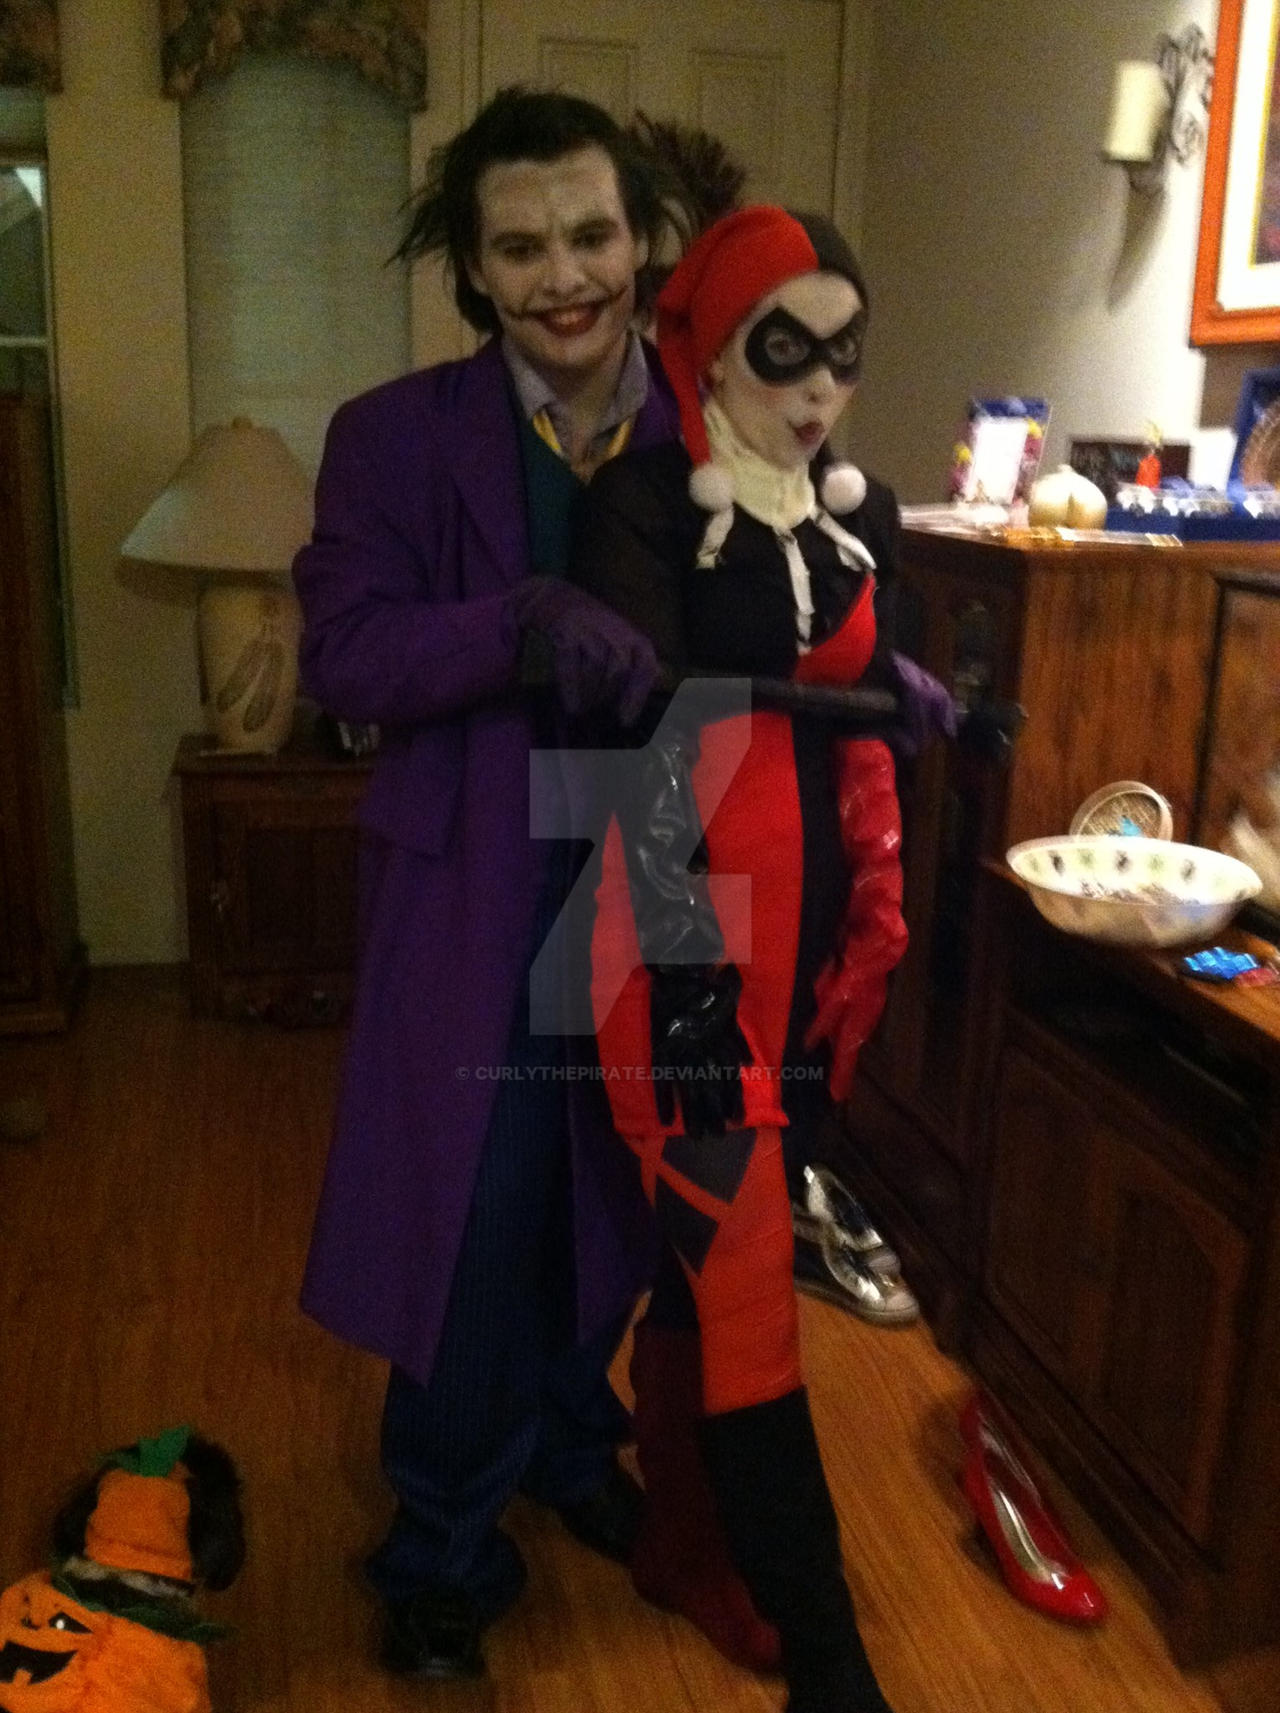 the joker and harley quinn halloween costume by curlythepirate - The Joker And Harley Quinn Halloween Costumes